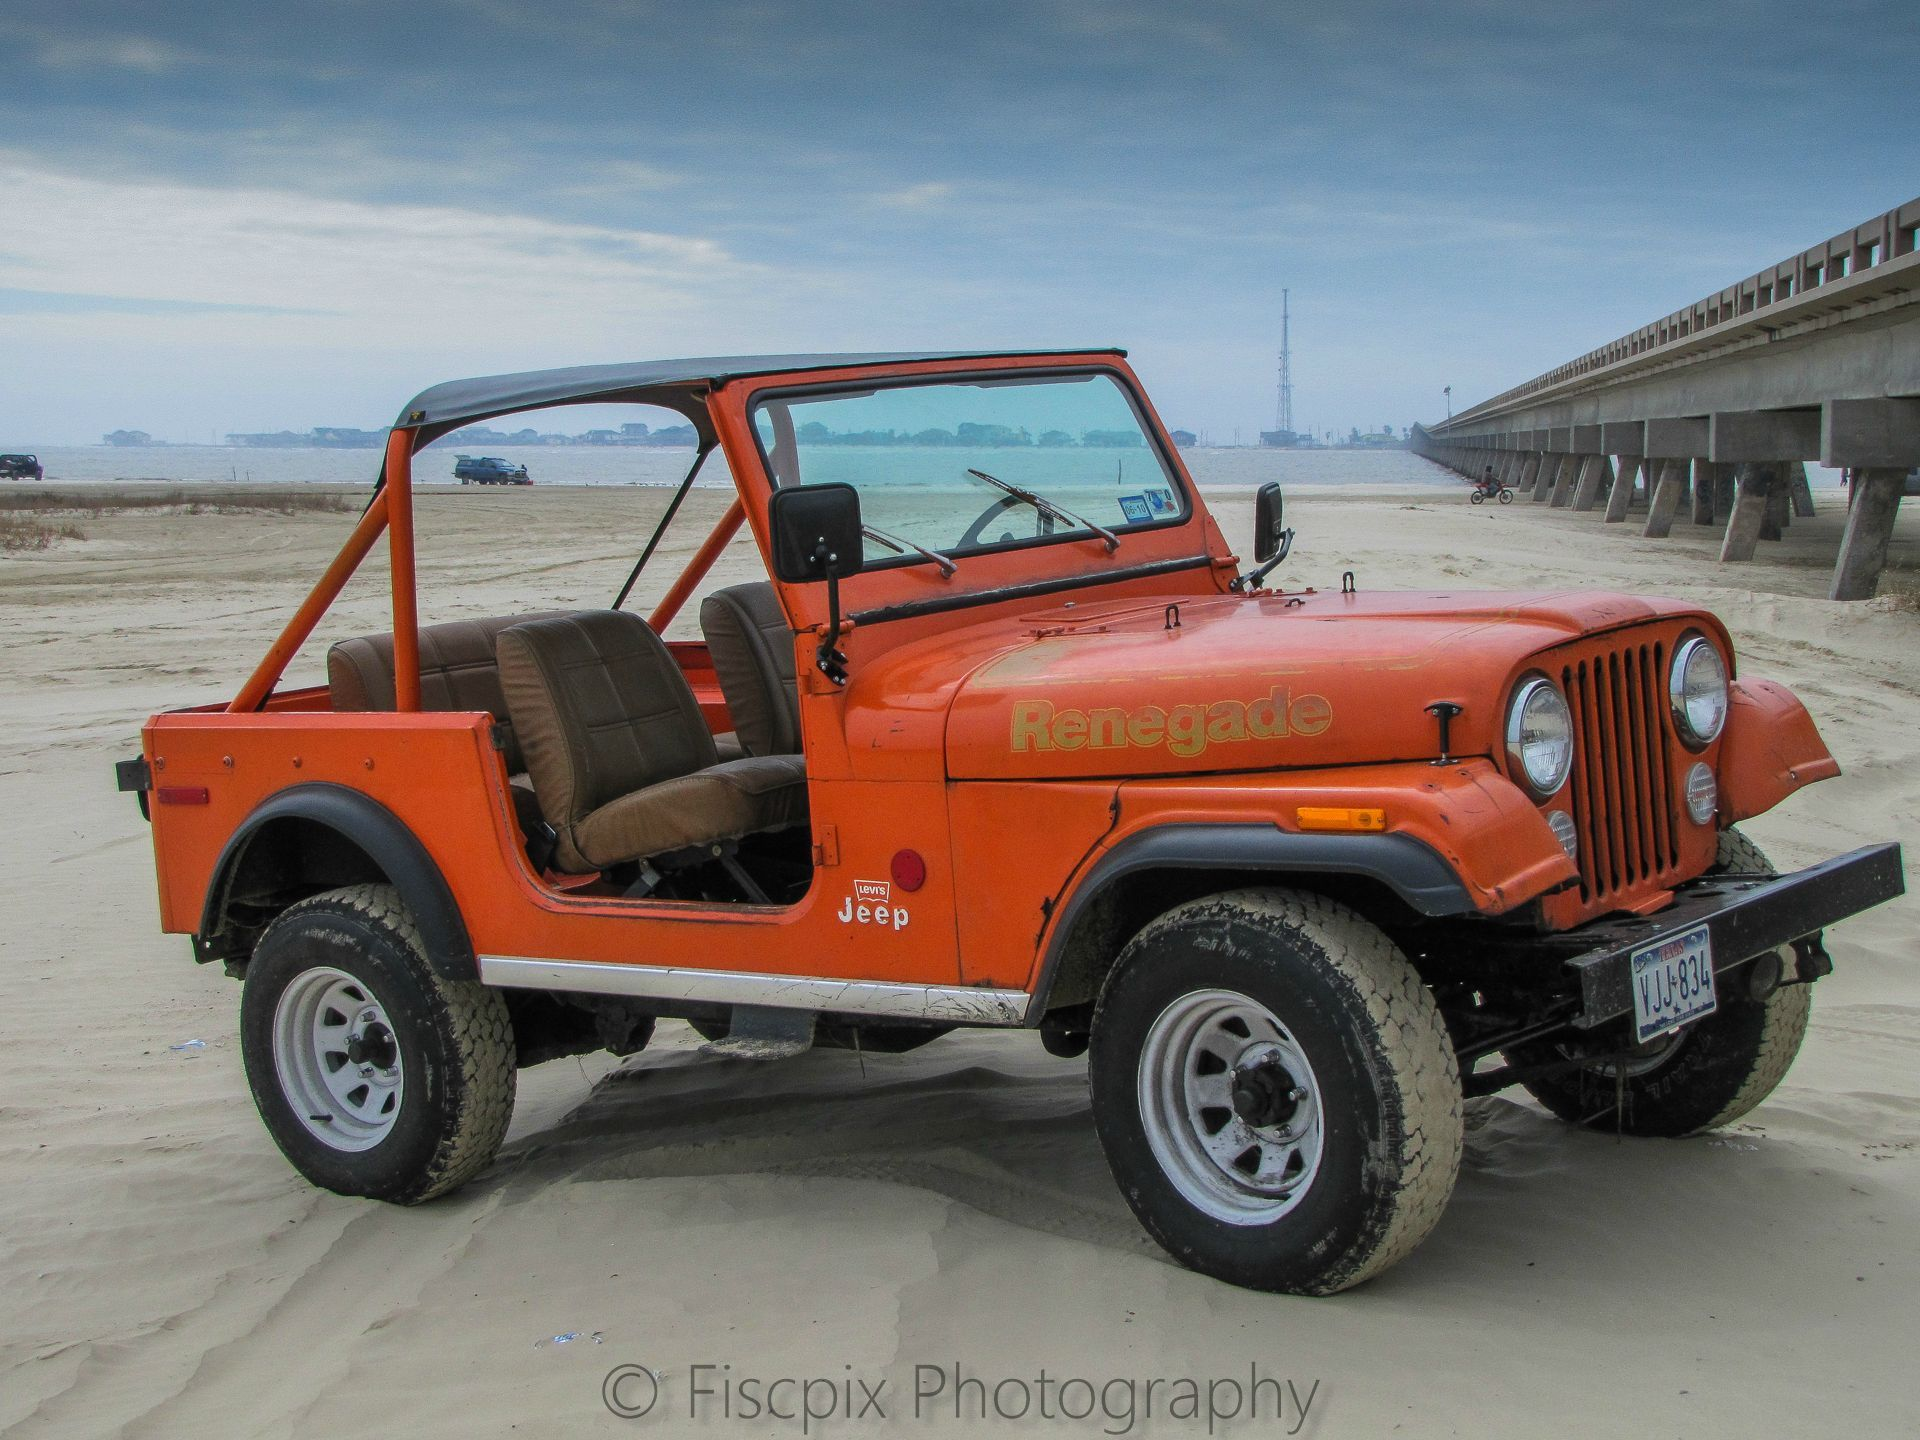 103 Points And 12 Comments So Far On Reddit Jeep Cj Jeep